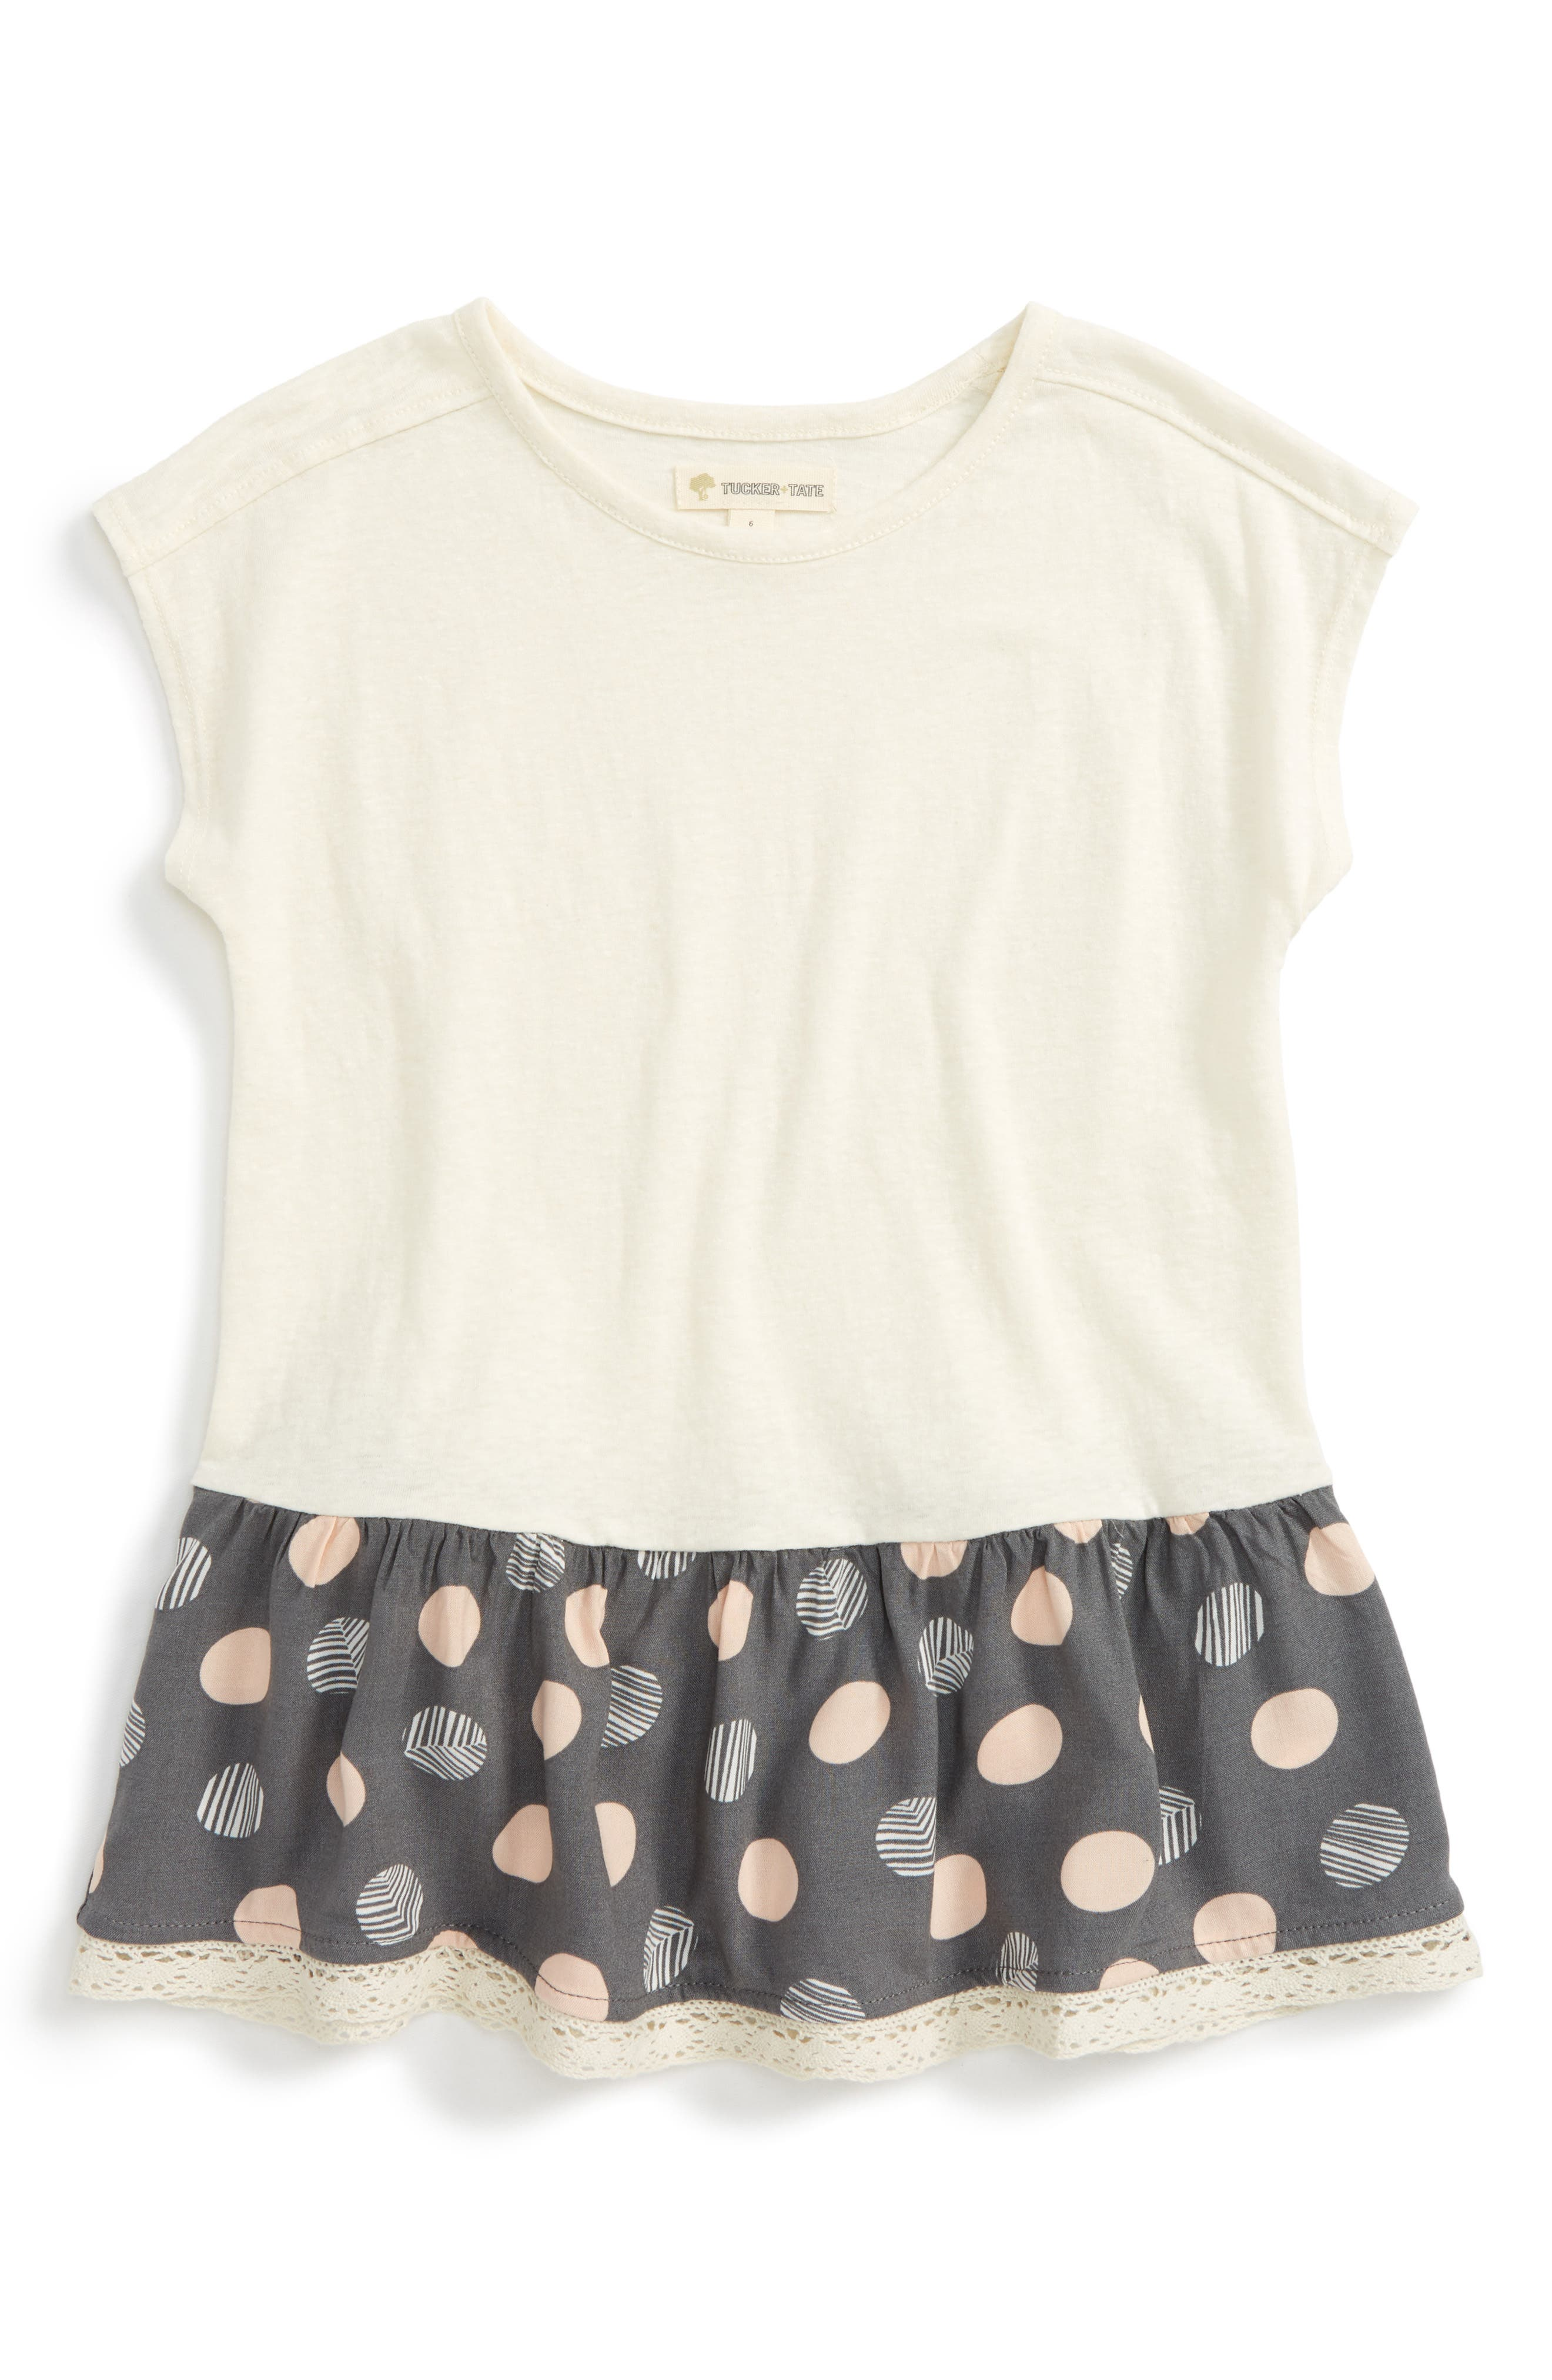 Tucker + Tate Peplum Tunic (Toddler Girls, Little Girls & Big Girls)